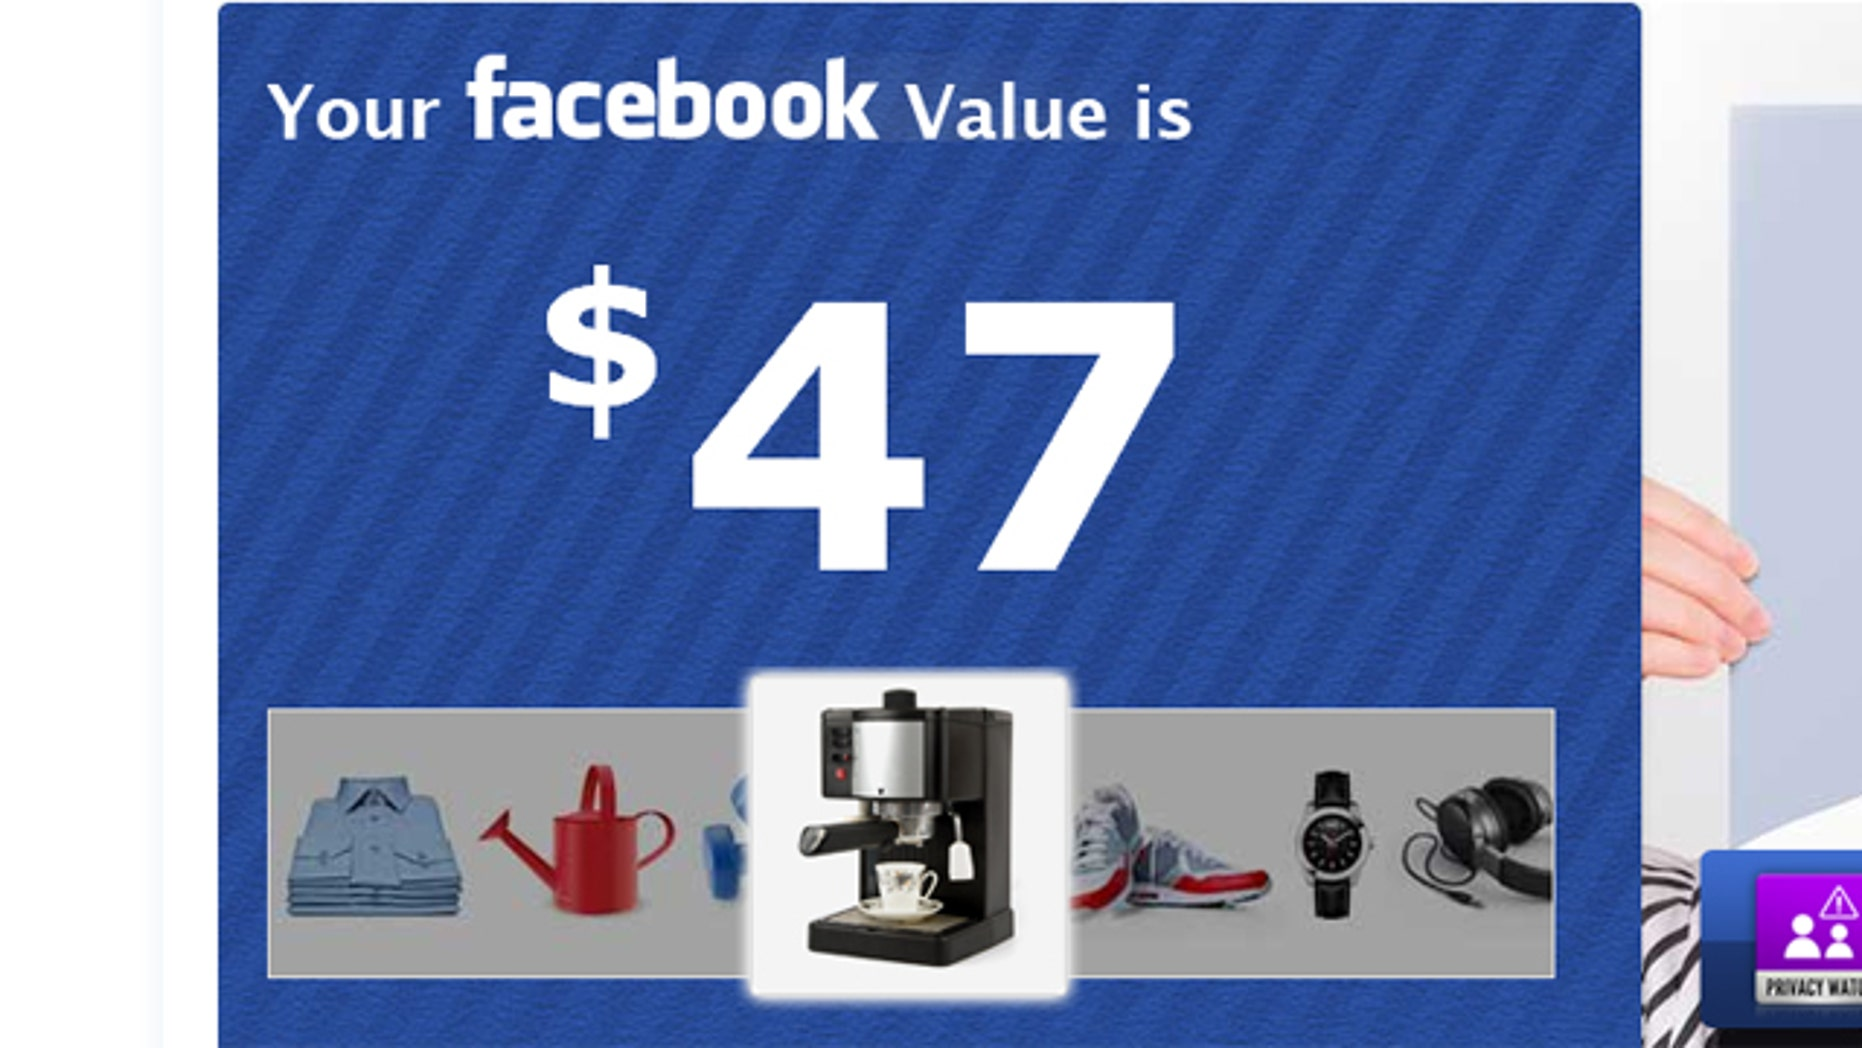 Your worth to Facebook? Roughly an espresso machine.